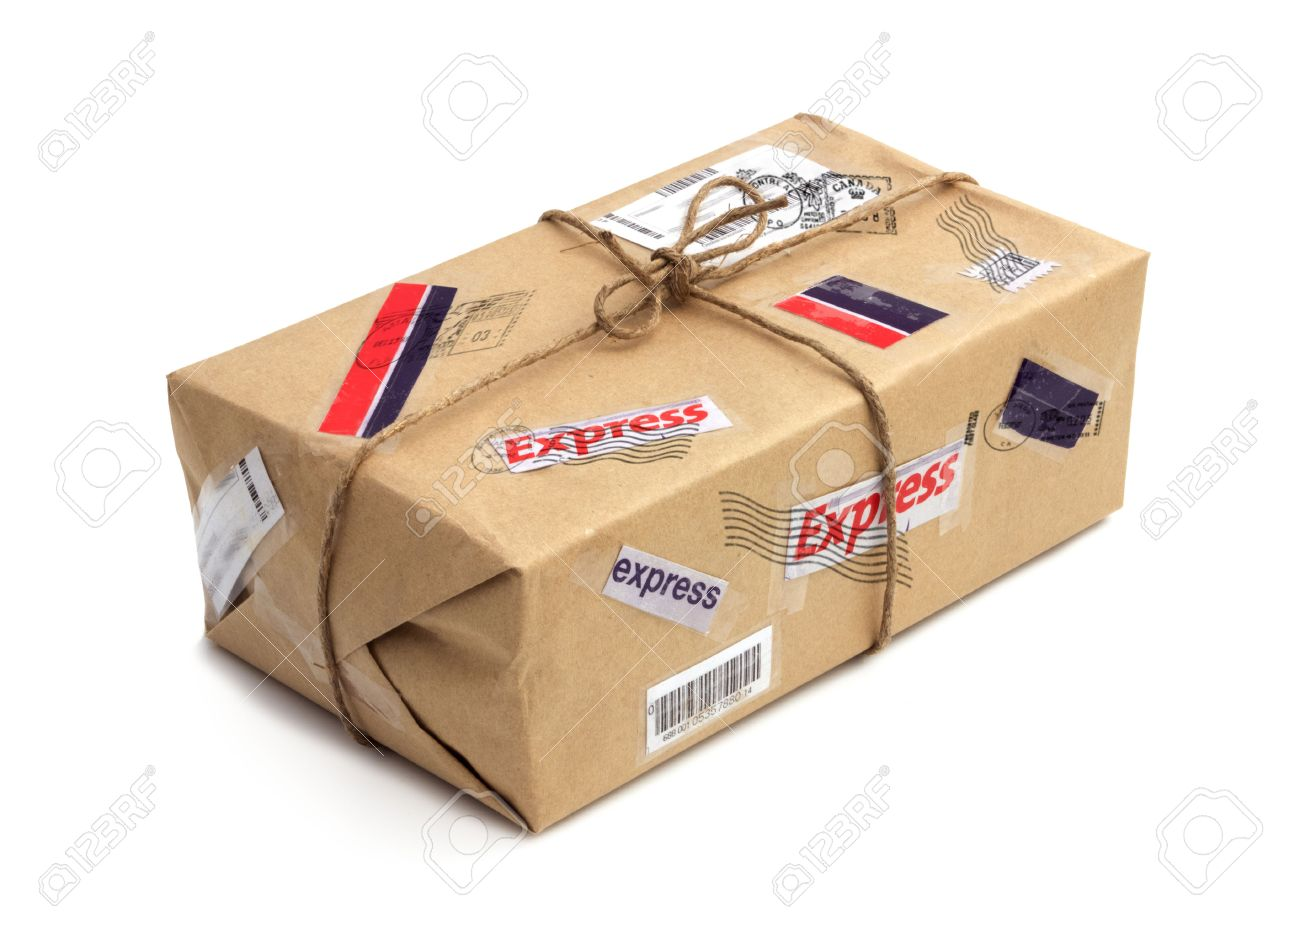 Postal package isolated over the white background Standard-Bild - 23796715